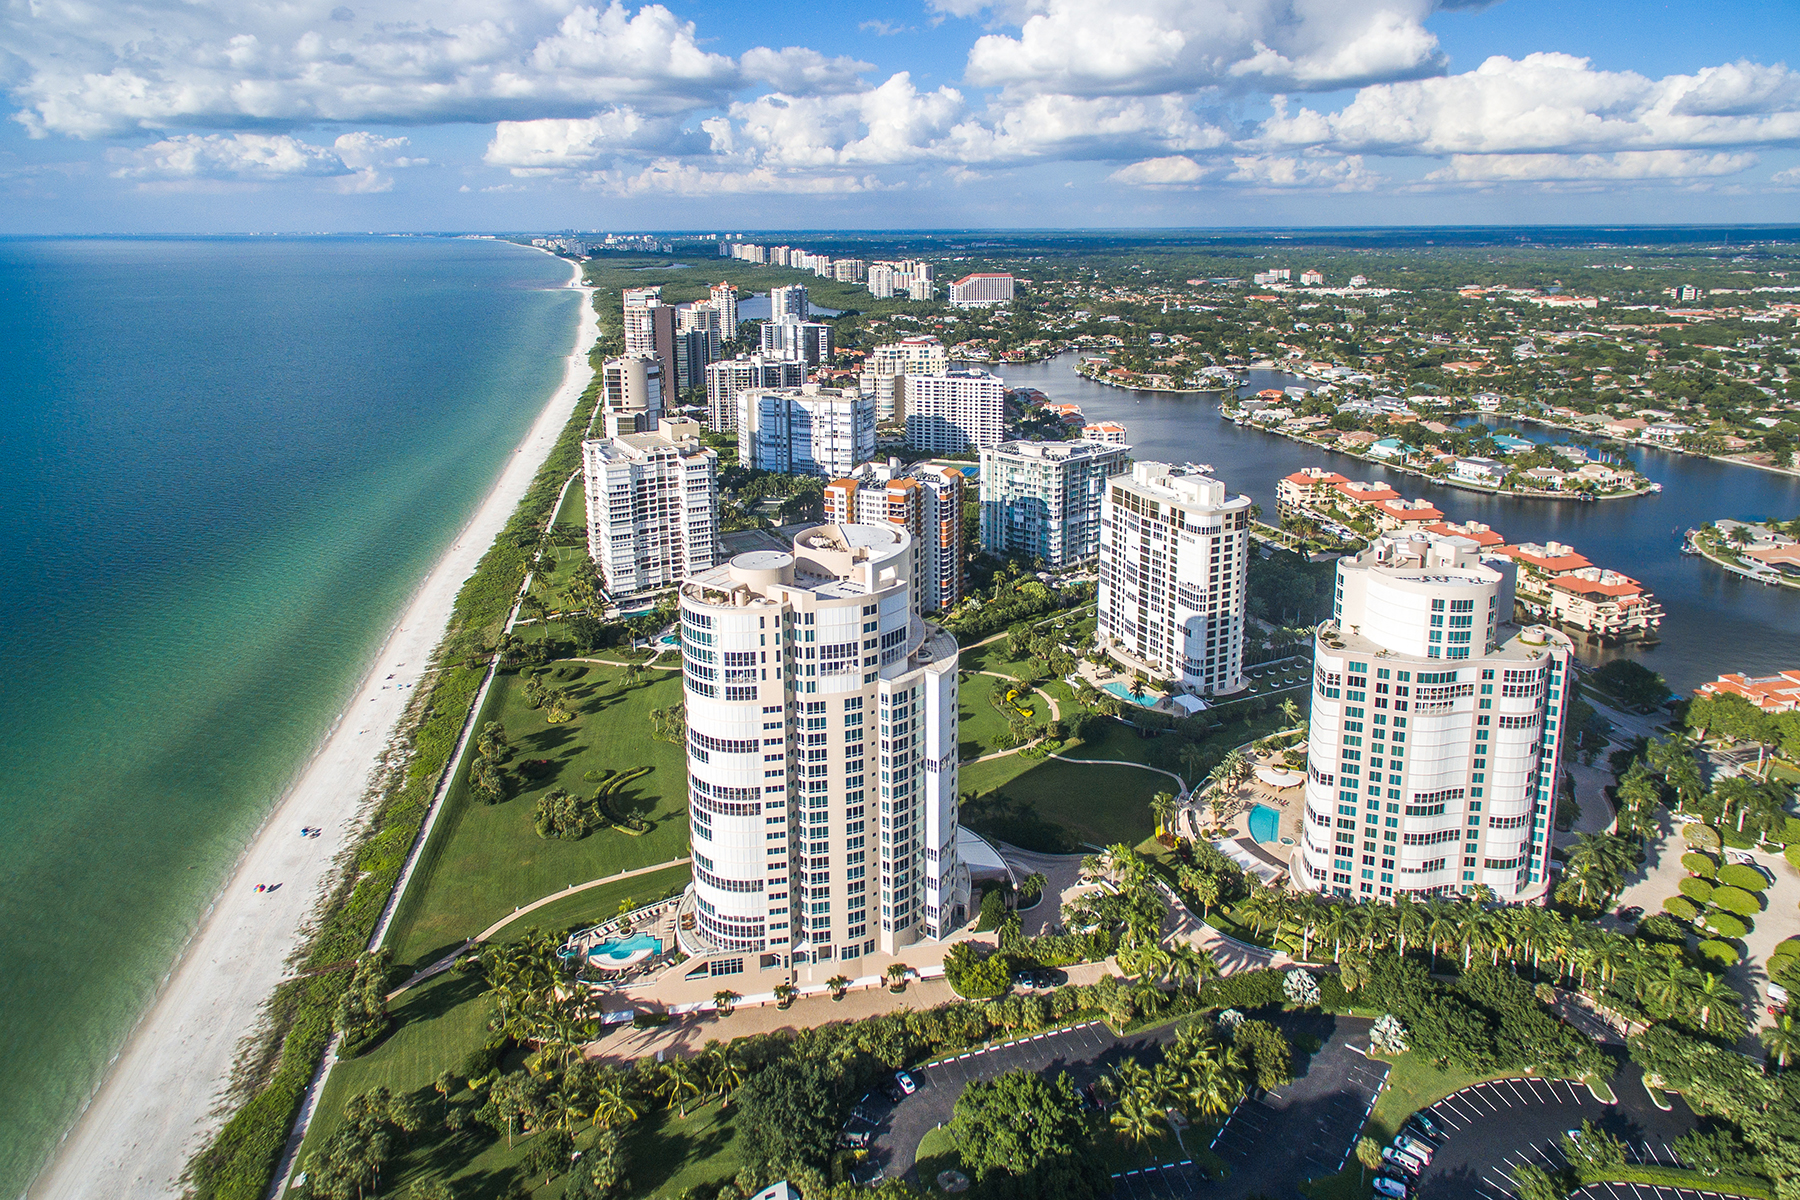 Condominium for Sale at PARK SHORE - LE RIVAGE 4351 Gulf Shore Blvd N 4N Naples, Florida, 34103 United States